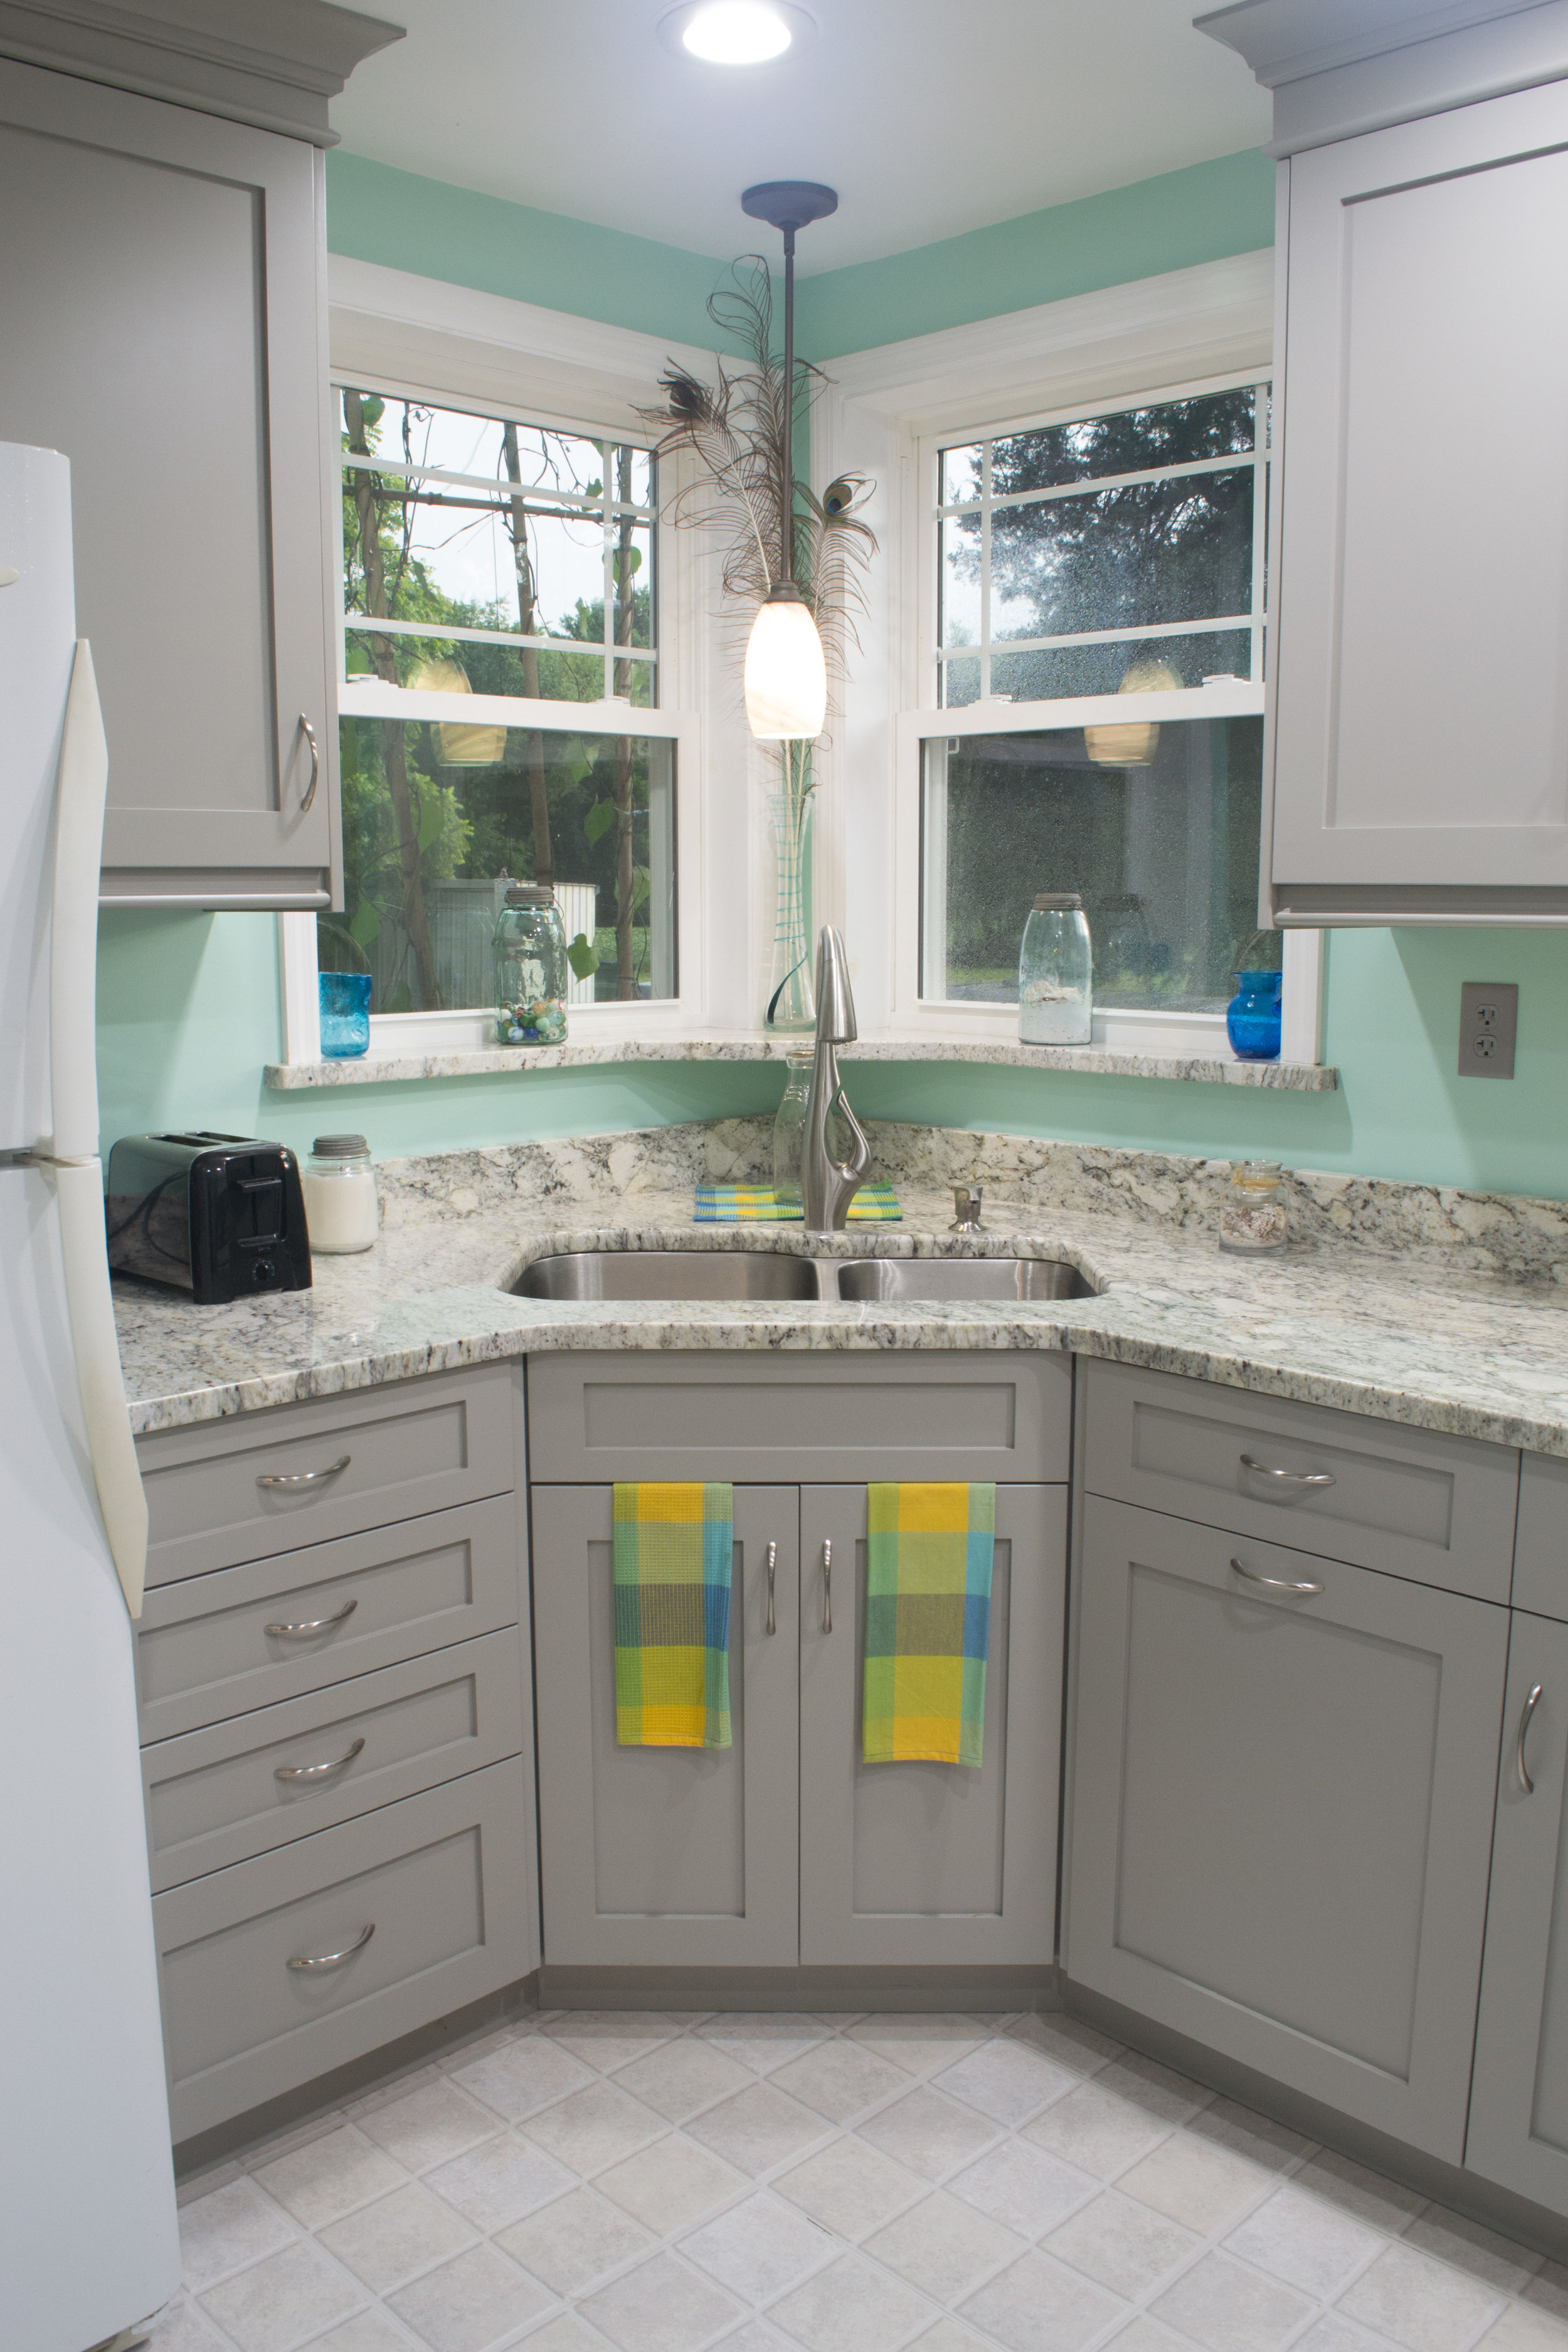 Mitchell grey shaker style kitchen painted cabinets-5.jpg